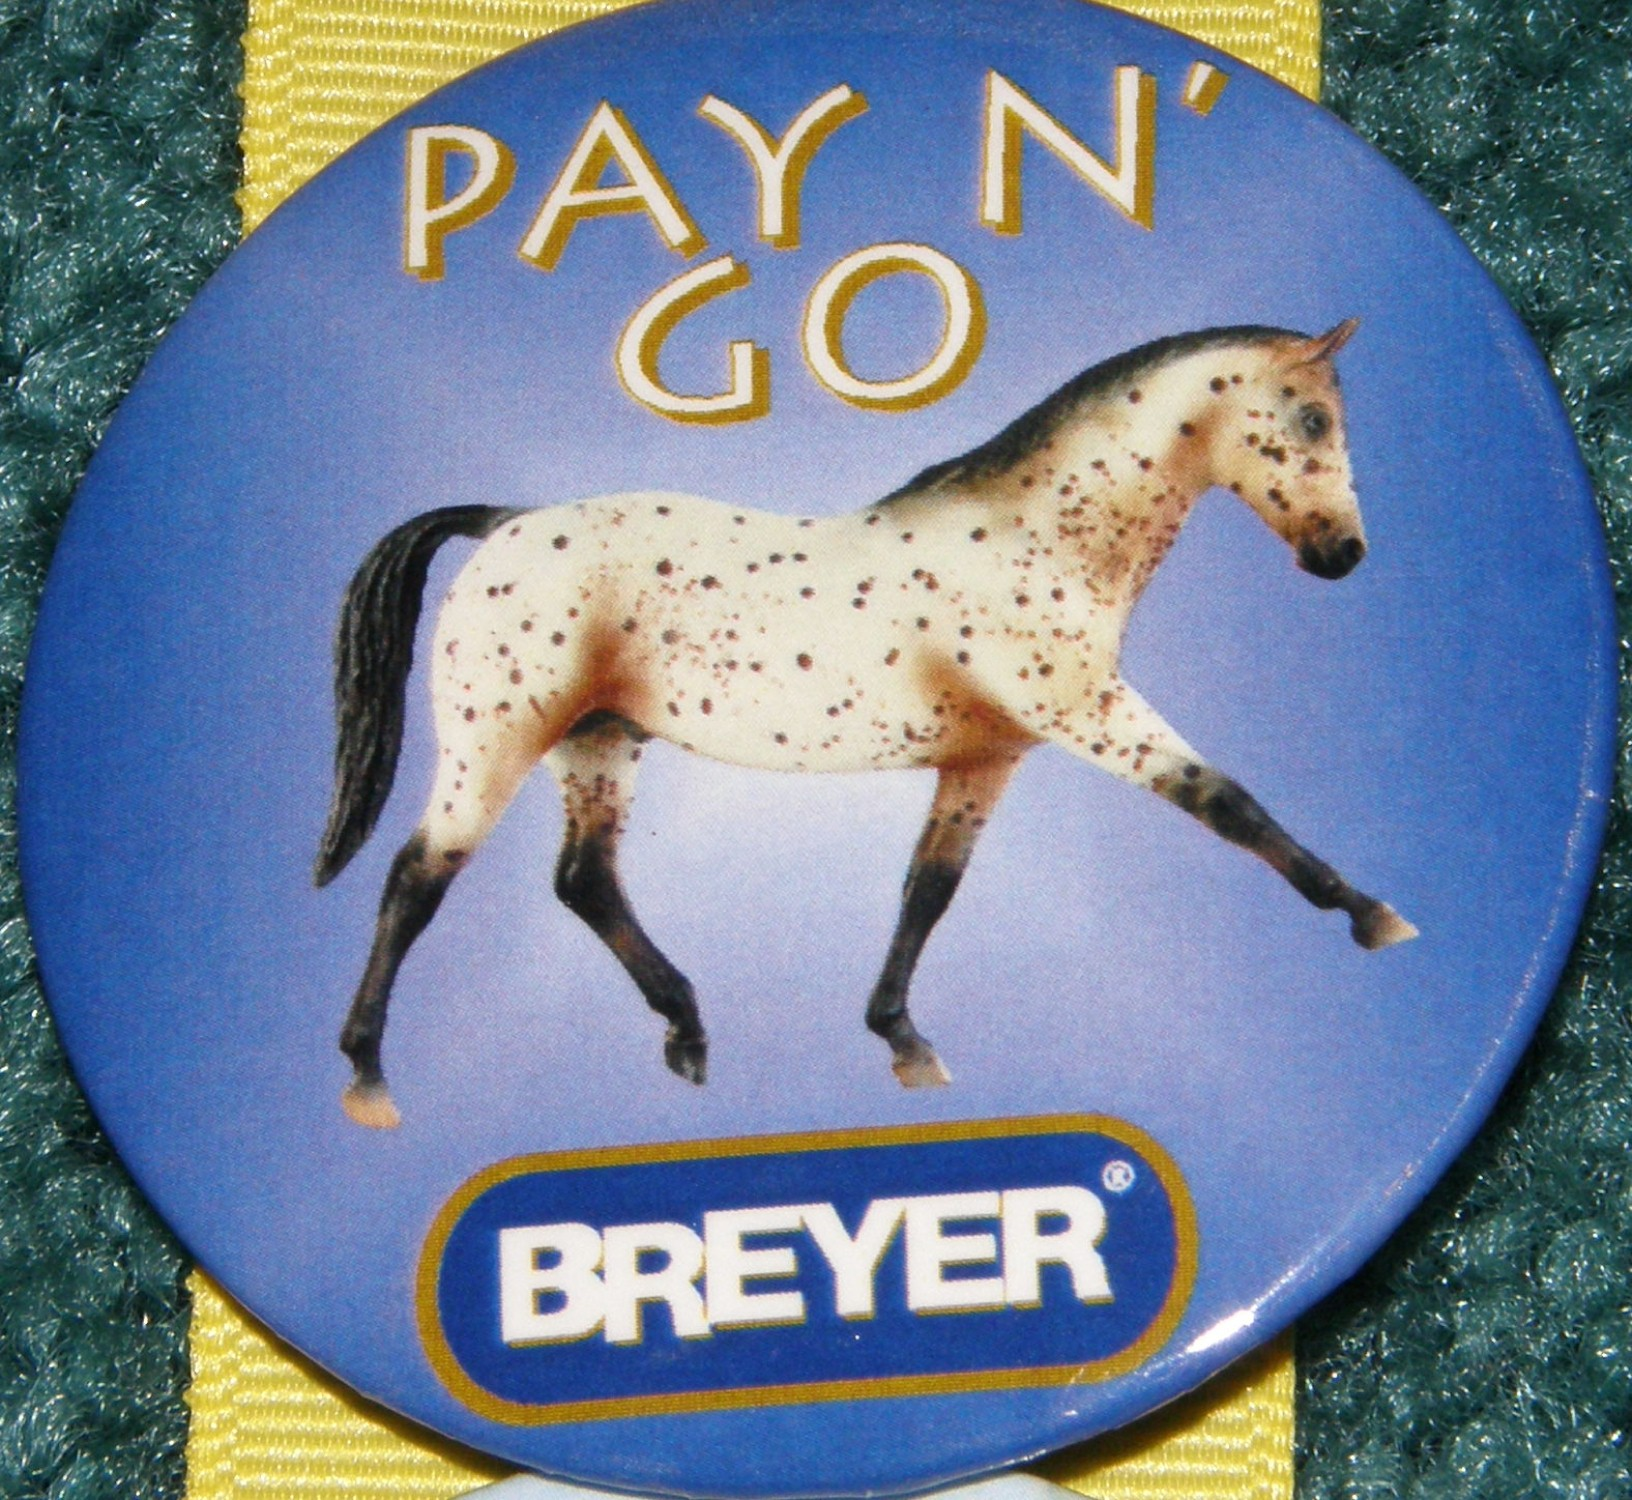 Click Here to View Breyer Buttons!